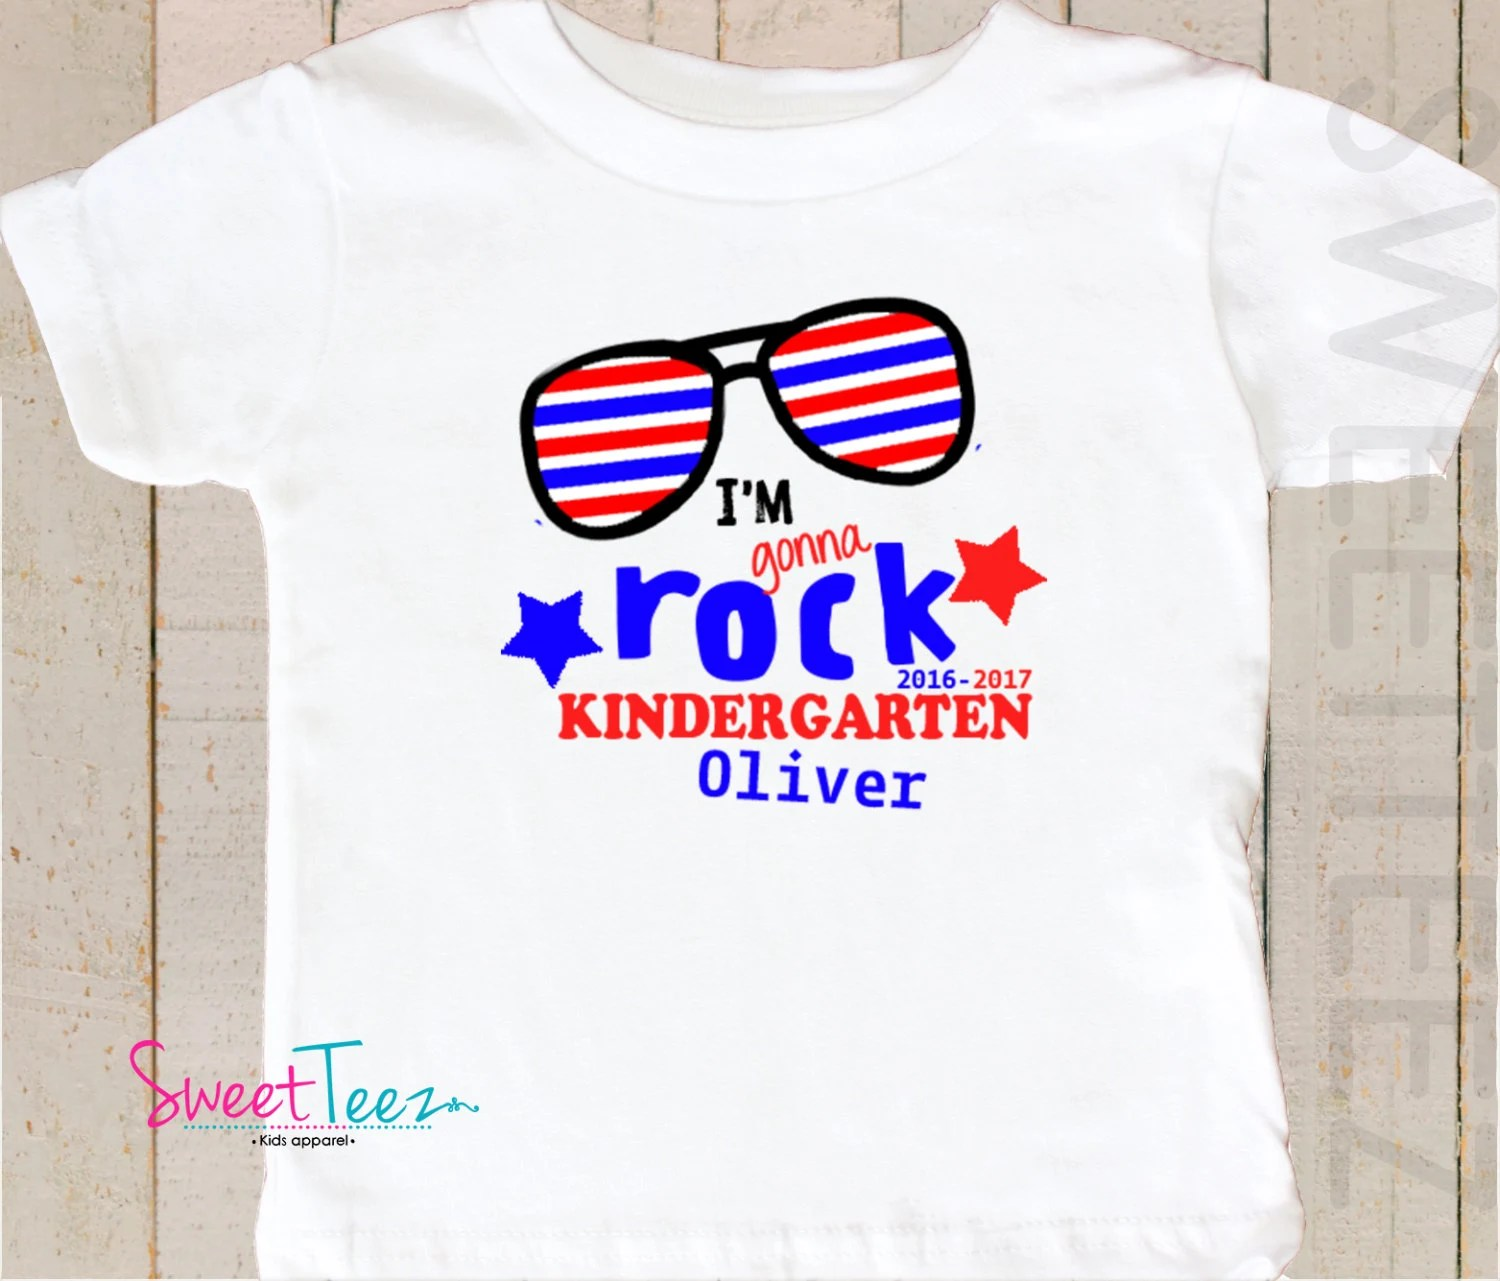 Kindergarten Shirt Kids Shirt I M Gonna Rock Kindergarten